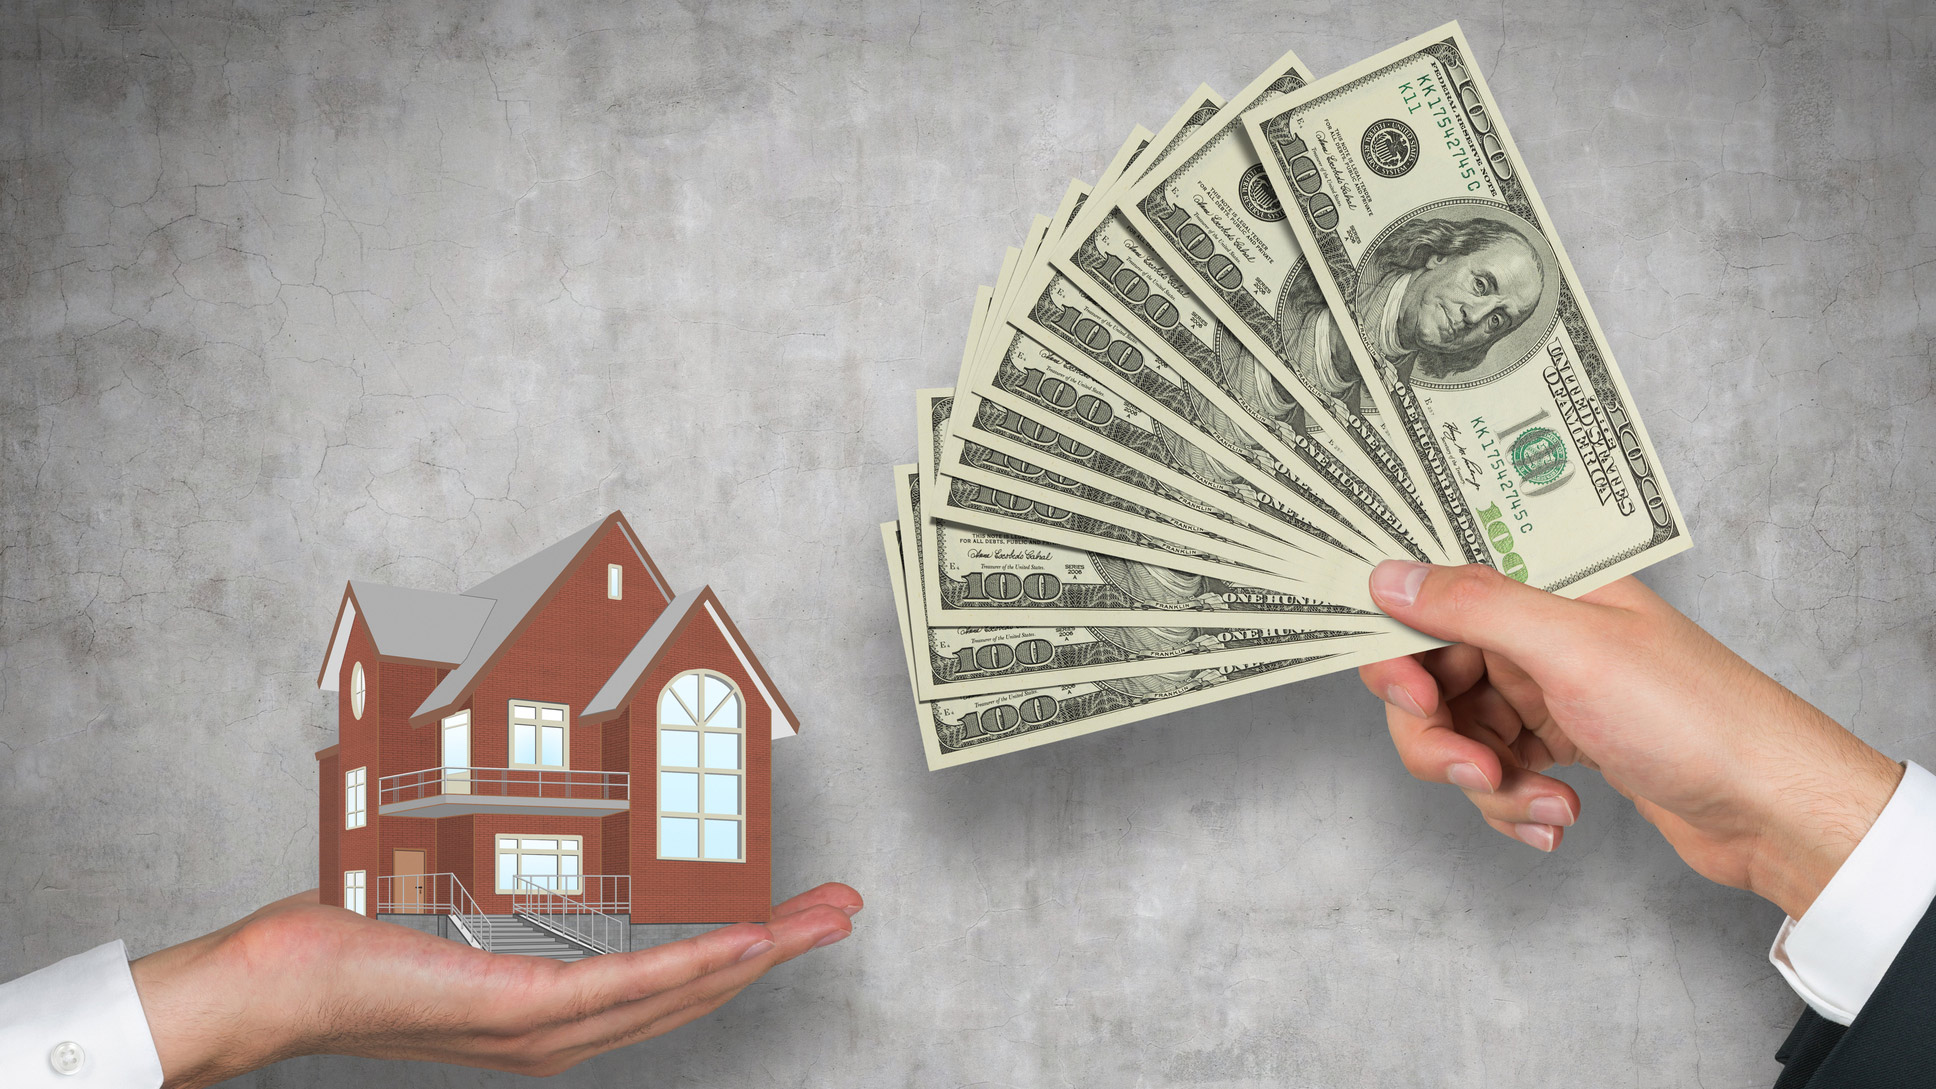 Saving Money On Your Home Purchase